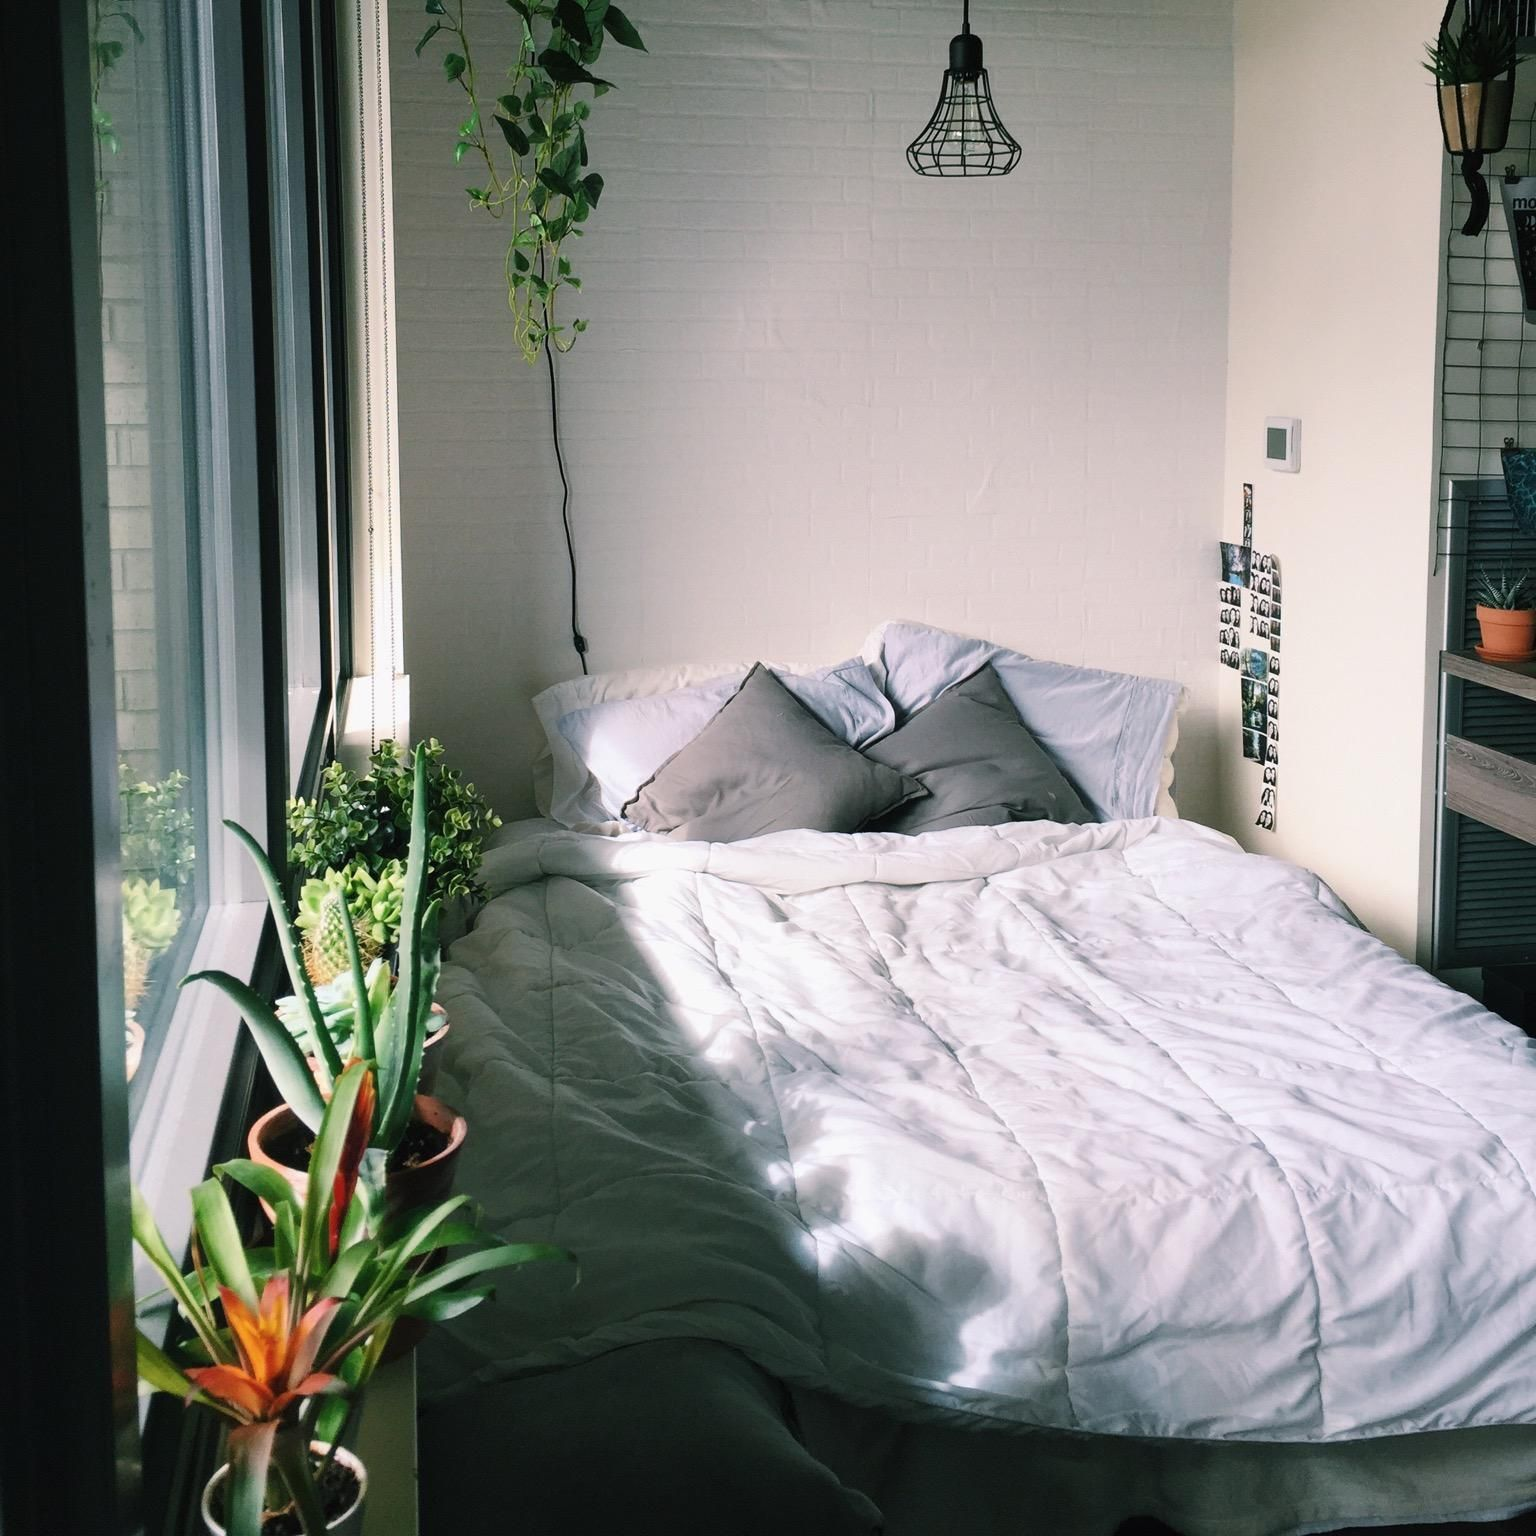 Virtual Dorm Room Design: Plants, Grey Pillows: IKEA - Bedding: Marshalls